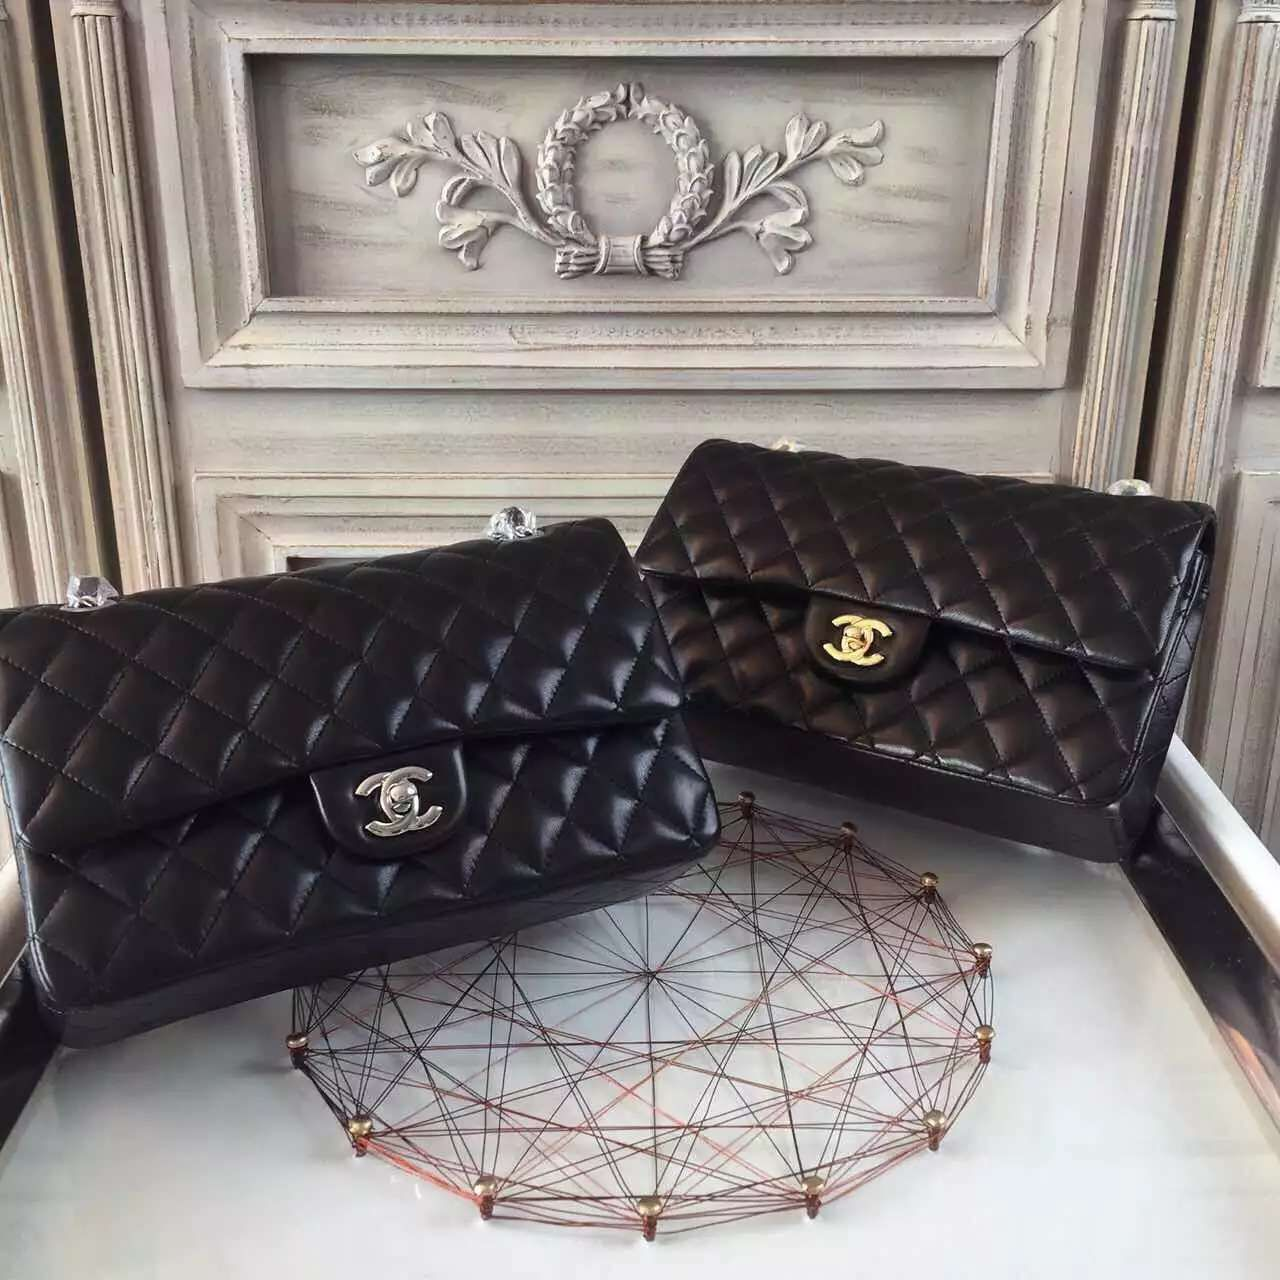 chanel Bag, ID : 35612(FORSALE:a@yybags.com), chanel gift bags for sale, shop chanel online, usa chanel, chanel online buy, buy chanel wallet, chanel duffel bag, chanel online boutique, chanel backpack purse, chanel sale handbags, chanel address, chanel handbag designers, chanel page, chanel designer handbags on sale, chanel online shop usa #chanelBag #chanel #chanel #backpack #handbags